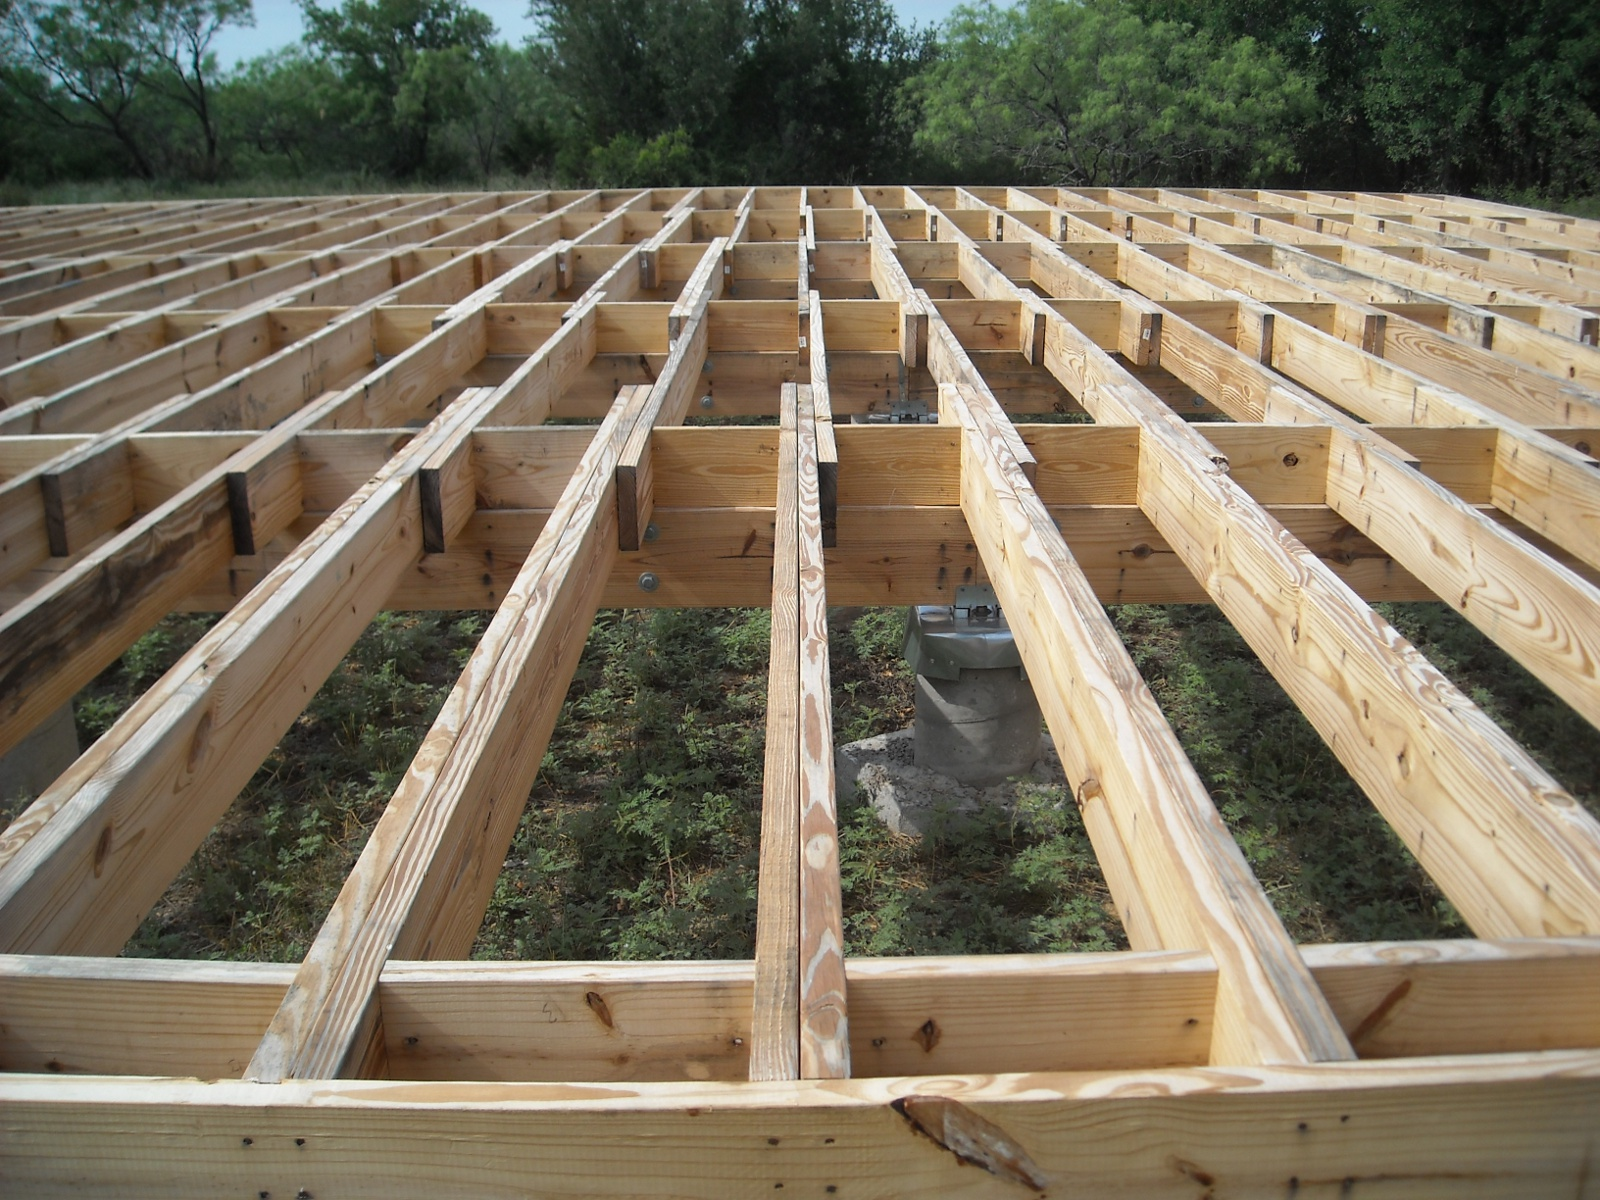 Wood deck joists